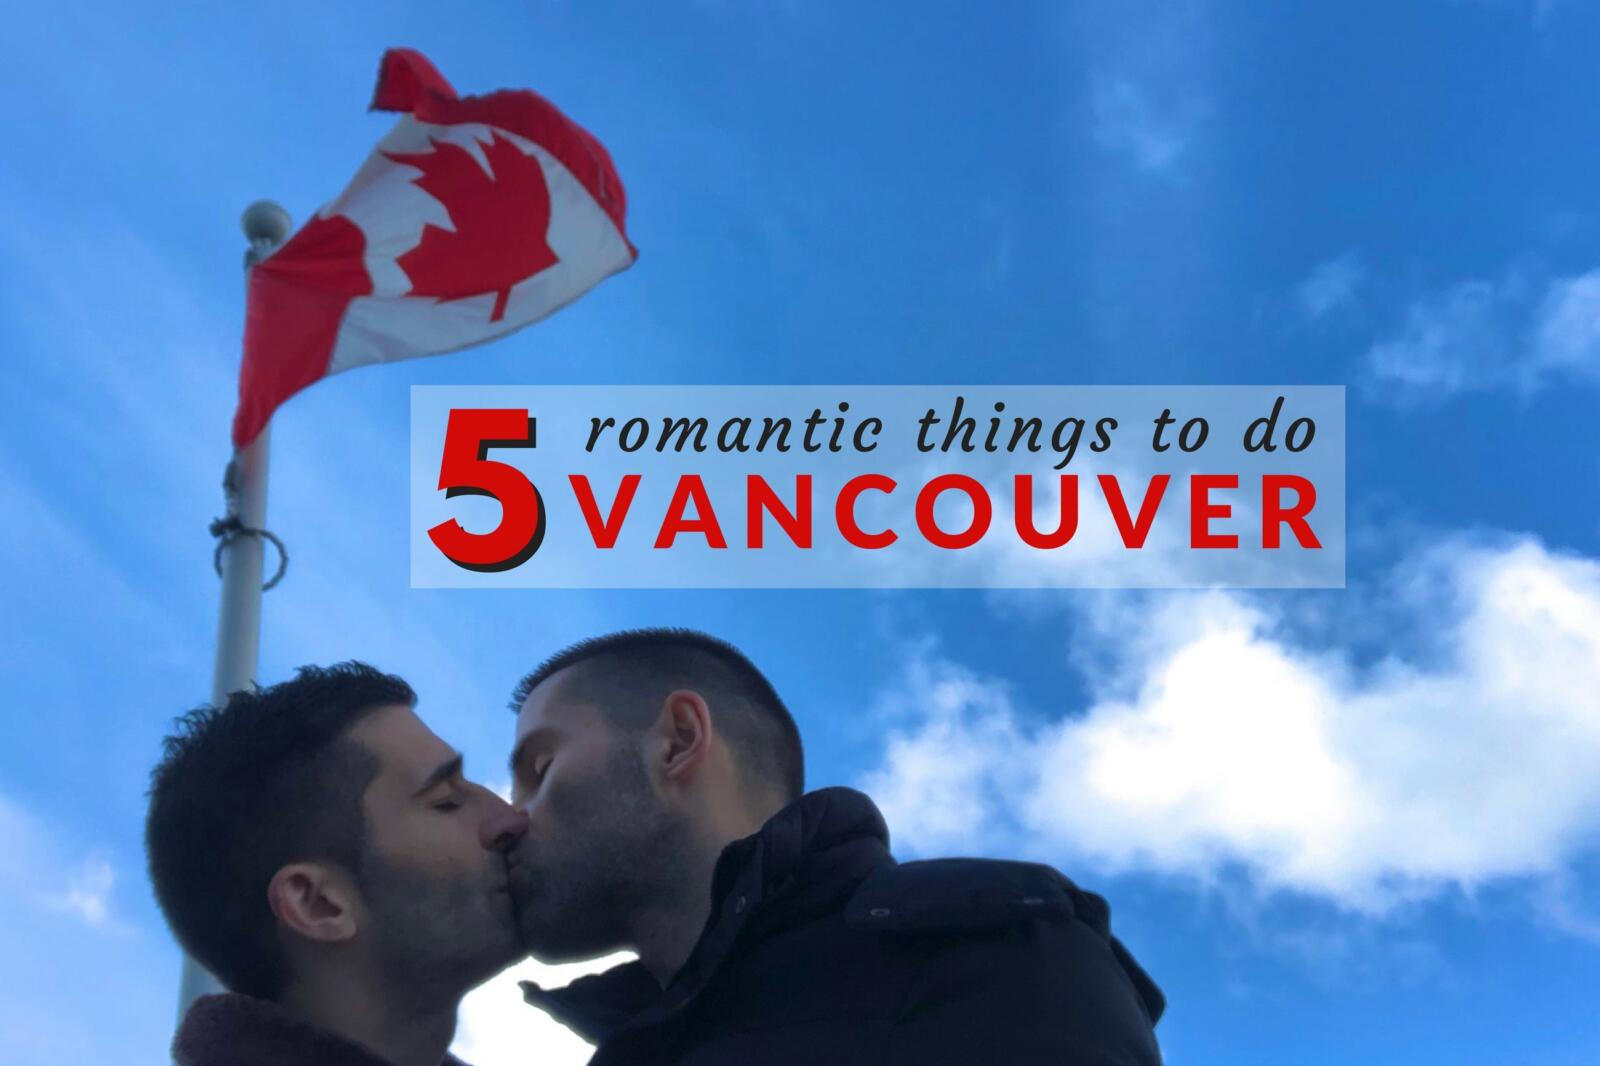 5 romantic things to do in Toronto for gay couples